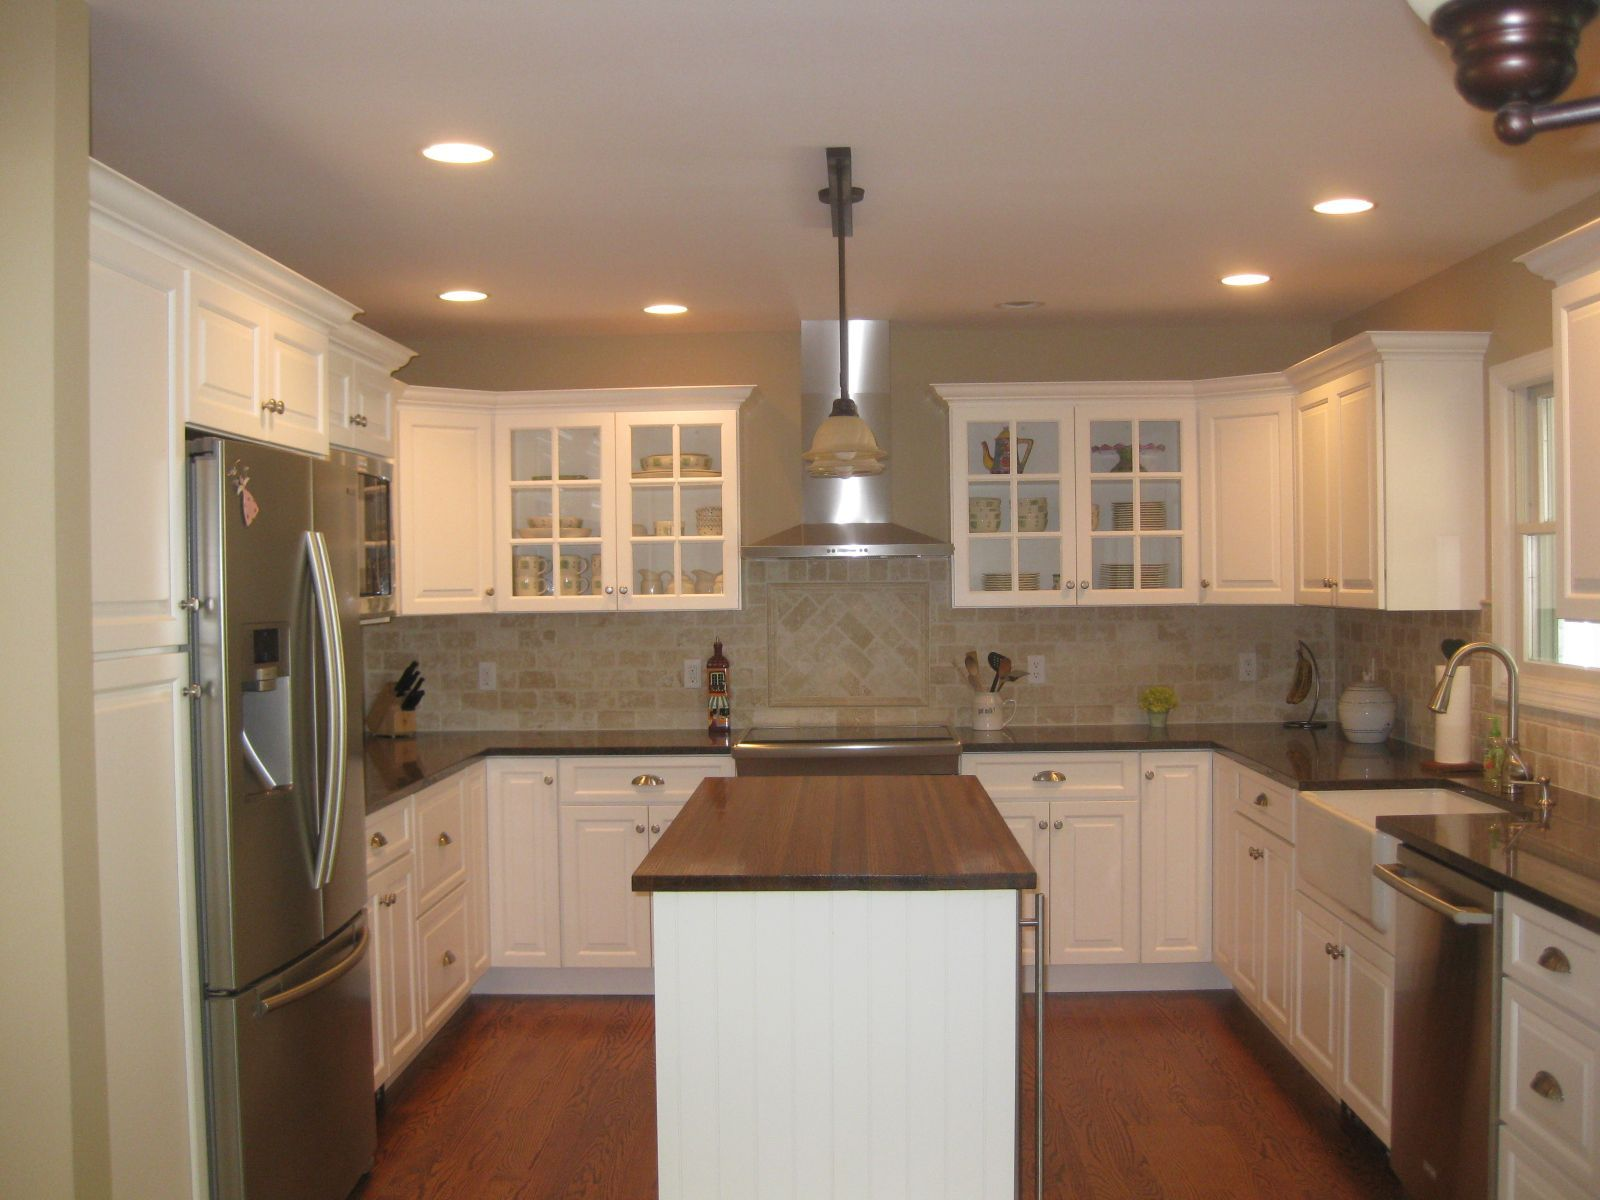 u shaped kitchens pictures examples advantages and disadvantages u shaped kitchen layout with on u kitchen ideas small id=88773